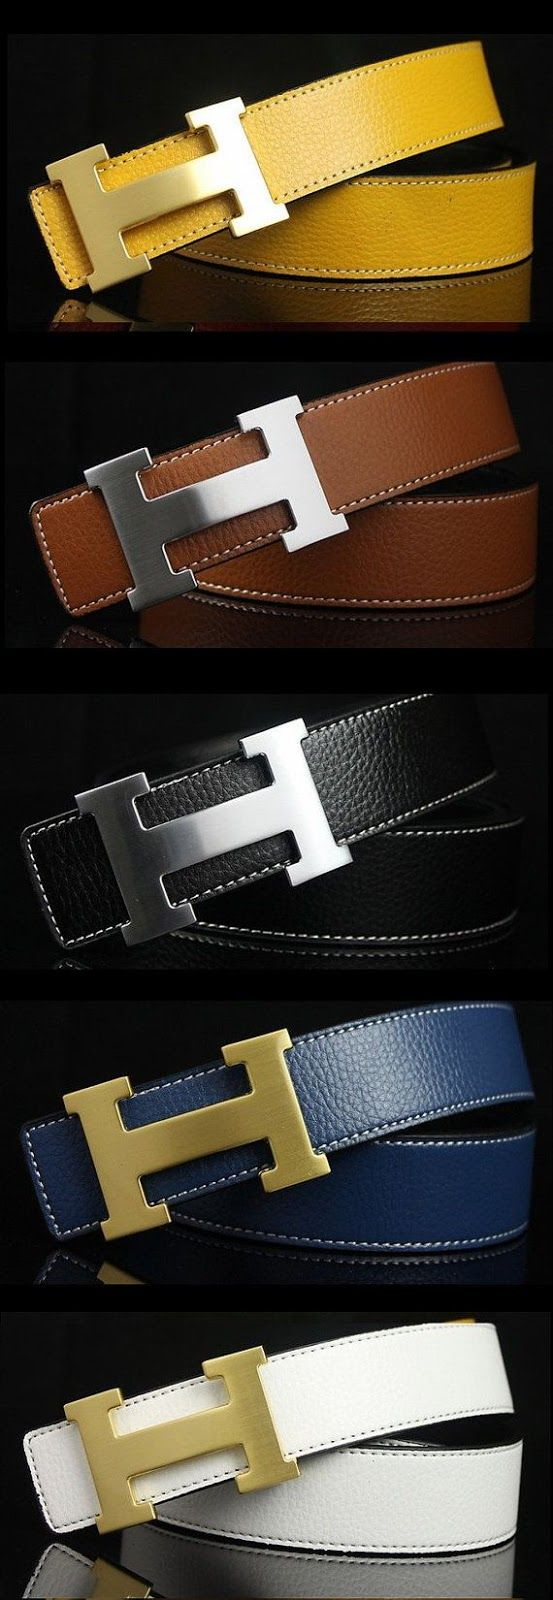 24 Best Cinturones Hombre Images On Pinterest Belts Belt And Cole 1 Baju Pria Crocodile Men Polo Shirt Relax Fit Katun Midnight Blue M Hermes 12 Colors H Pattern Leather For